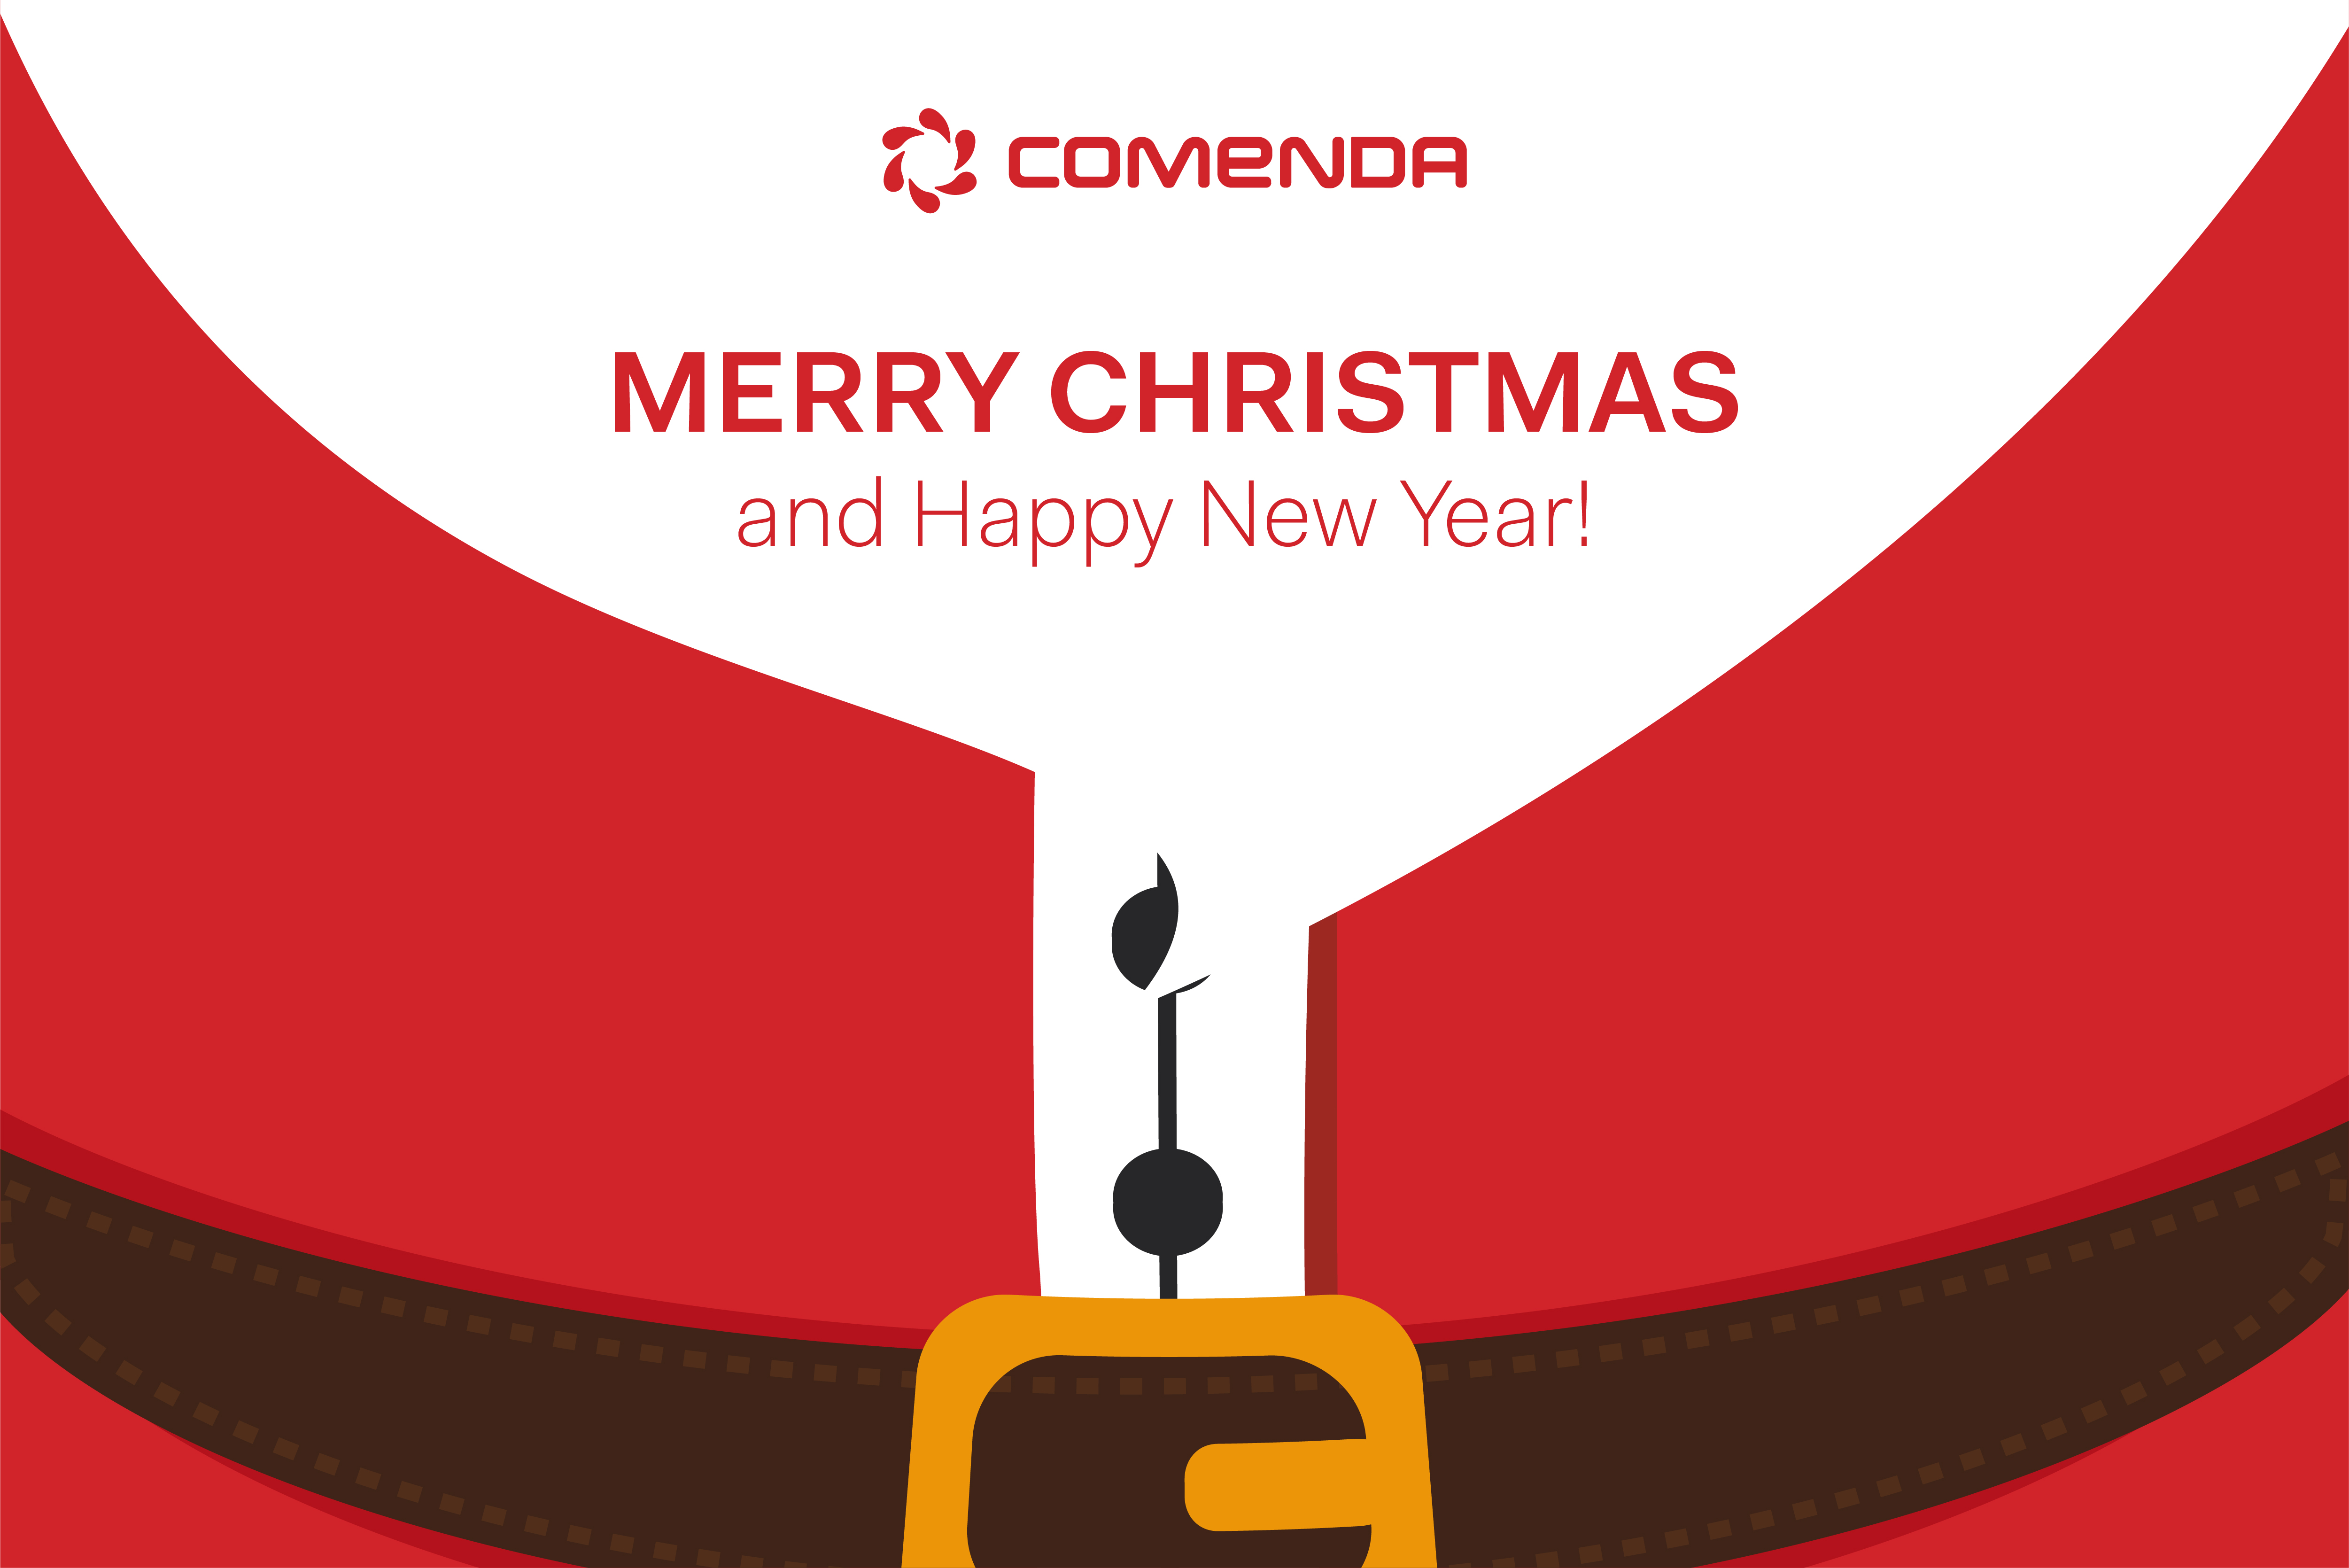 Merry Christmas from Comenda UK!